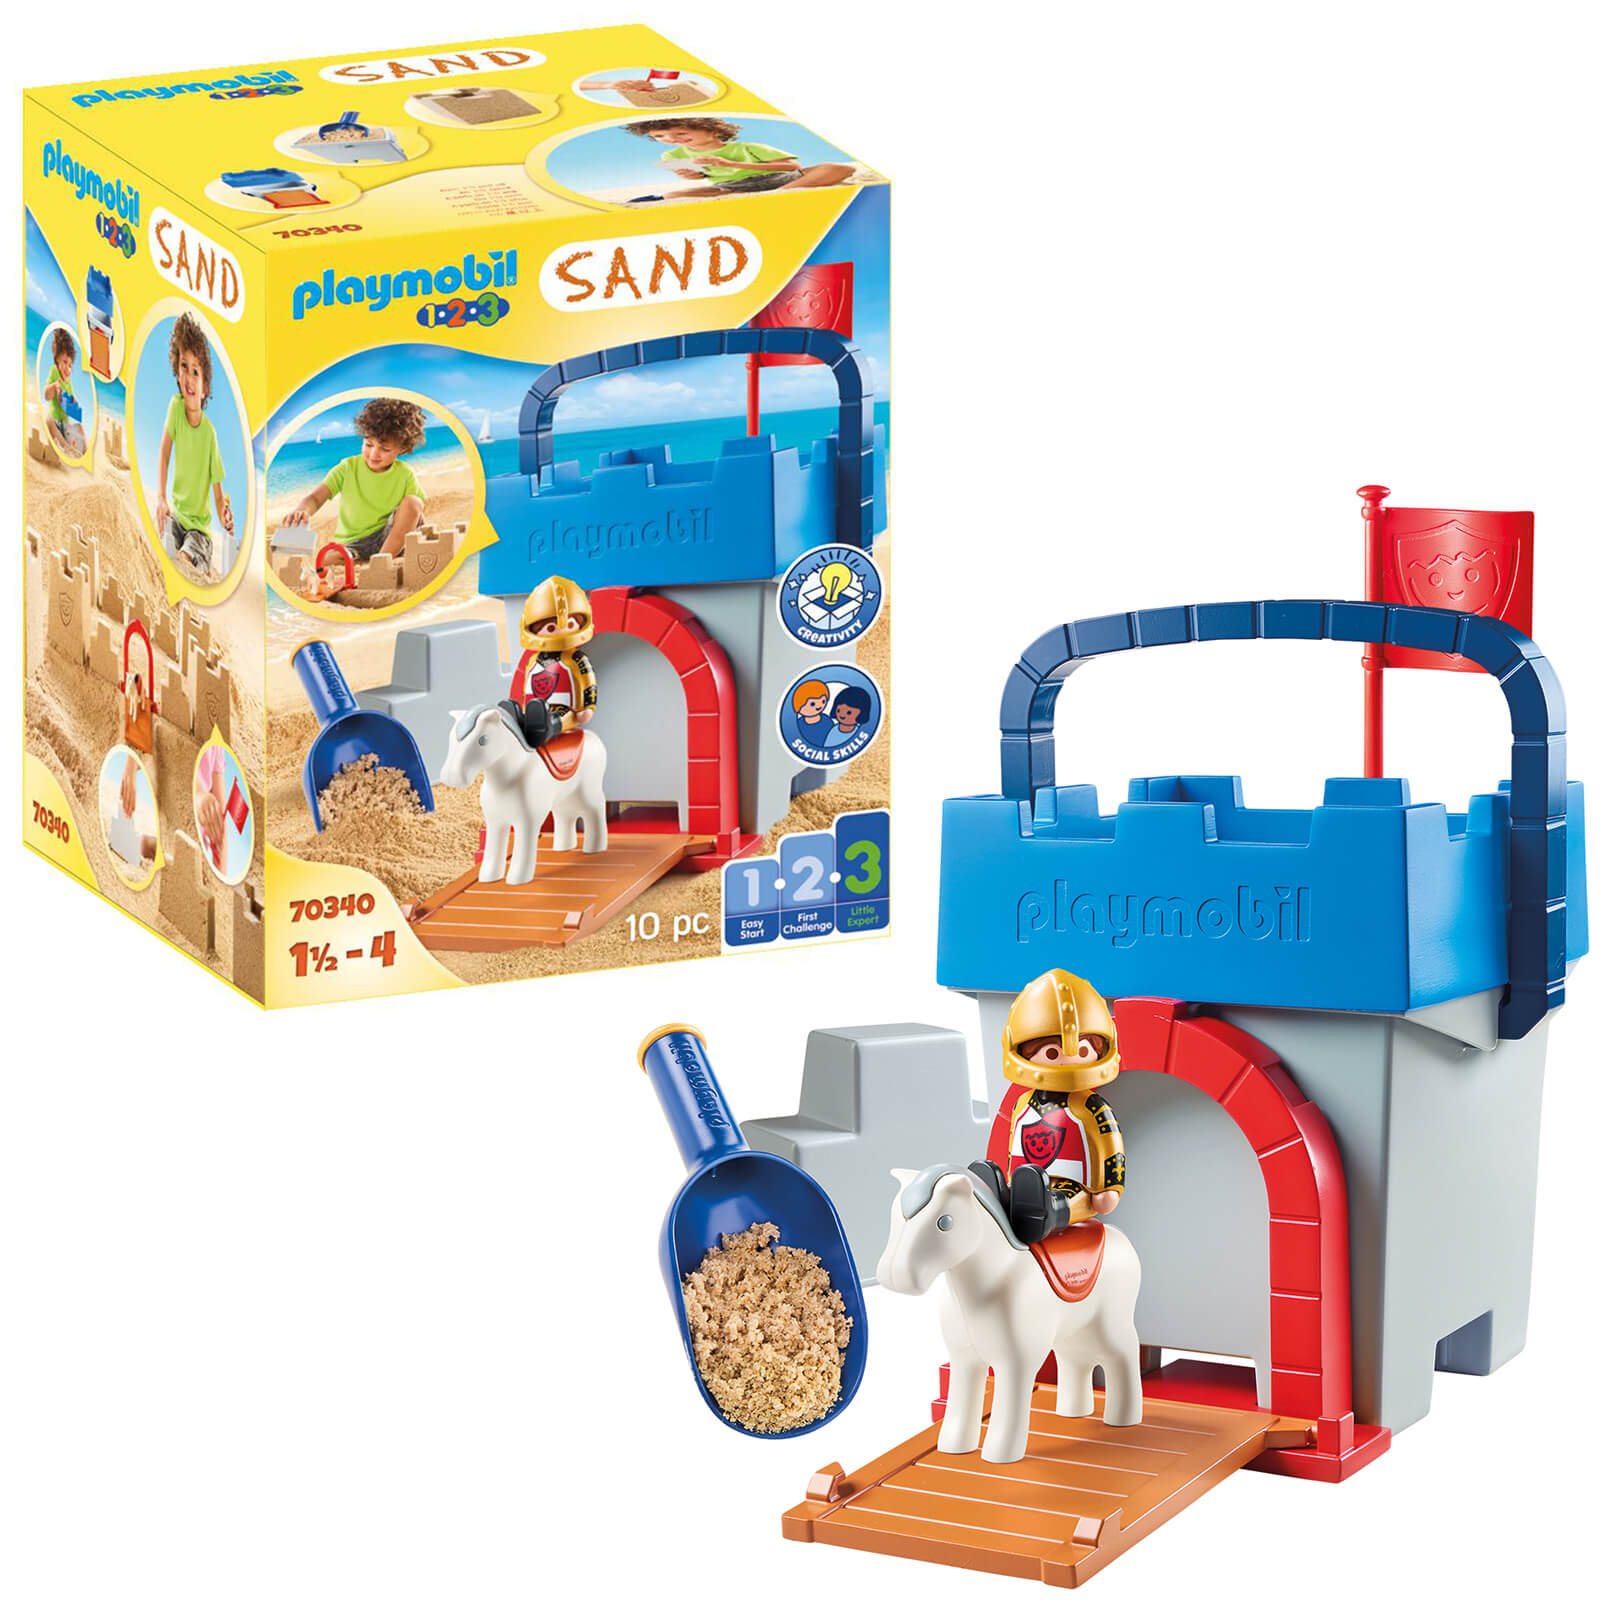 Playmobil SAND Knights Castle Sand Bucket For 18+ Months (70340)